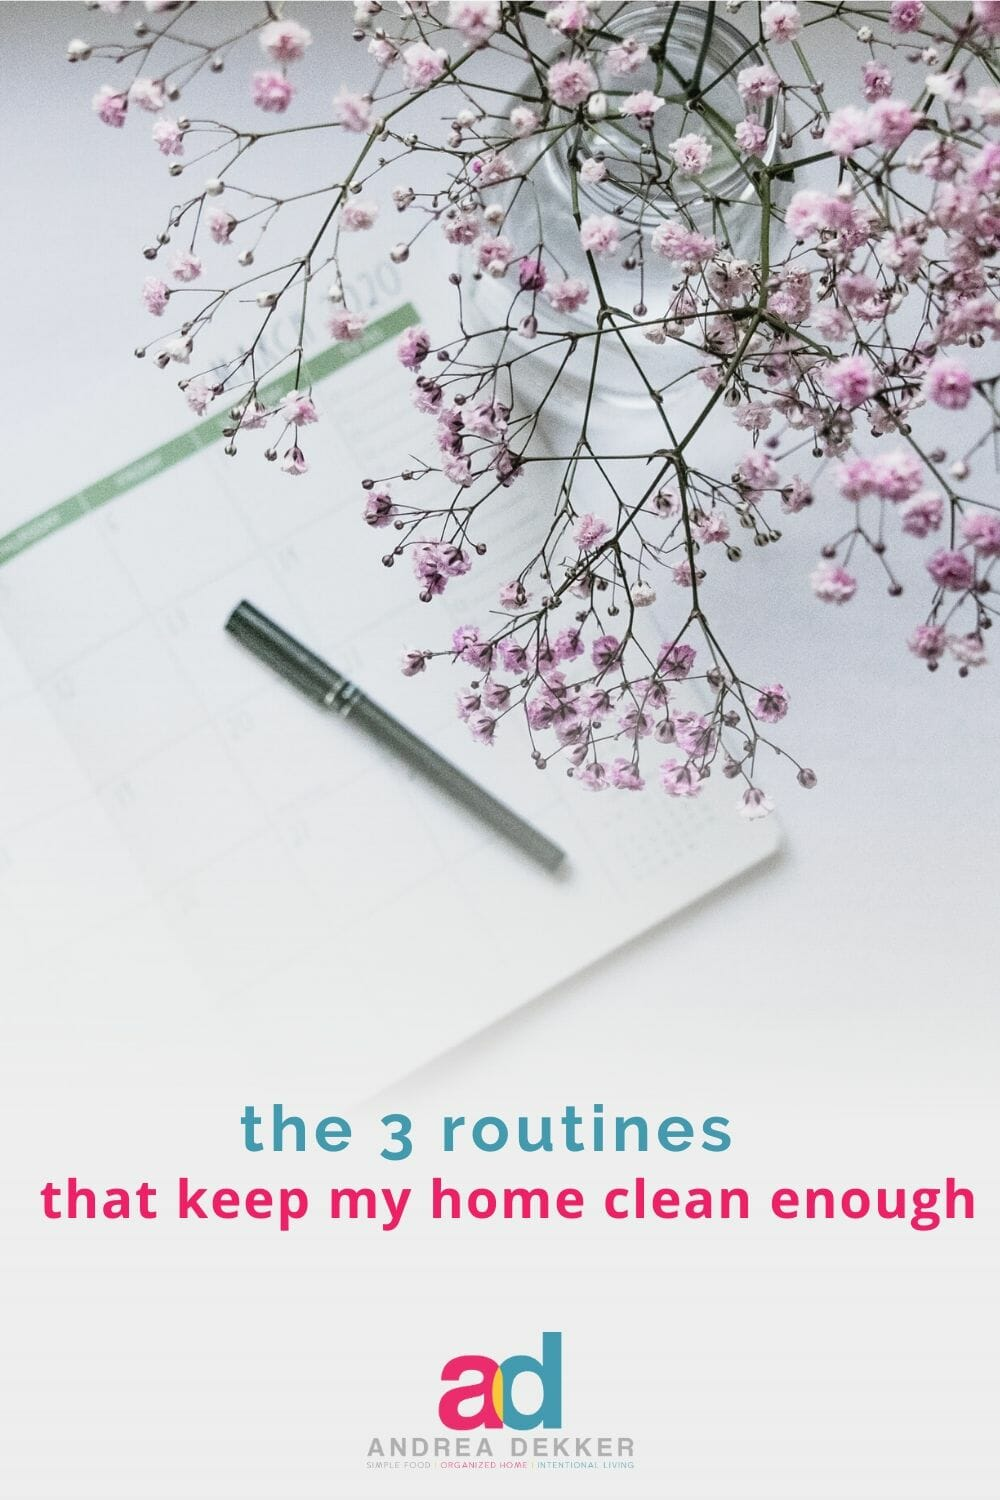 Do you struggle to stay on top of the messes and clutter in your home? If so, learn how to utilize routines to get your home clean & decluttered in less time! via @andreadekker